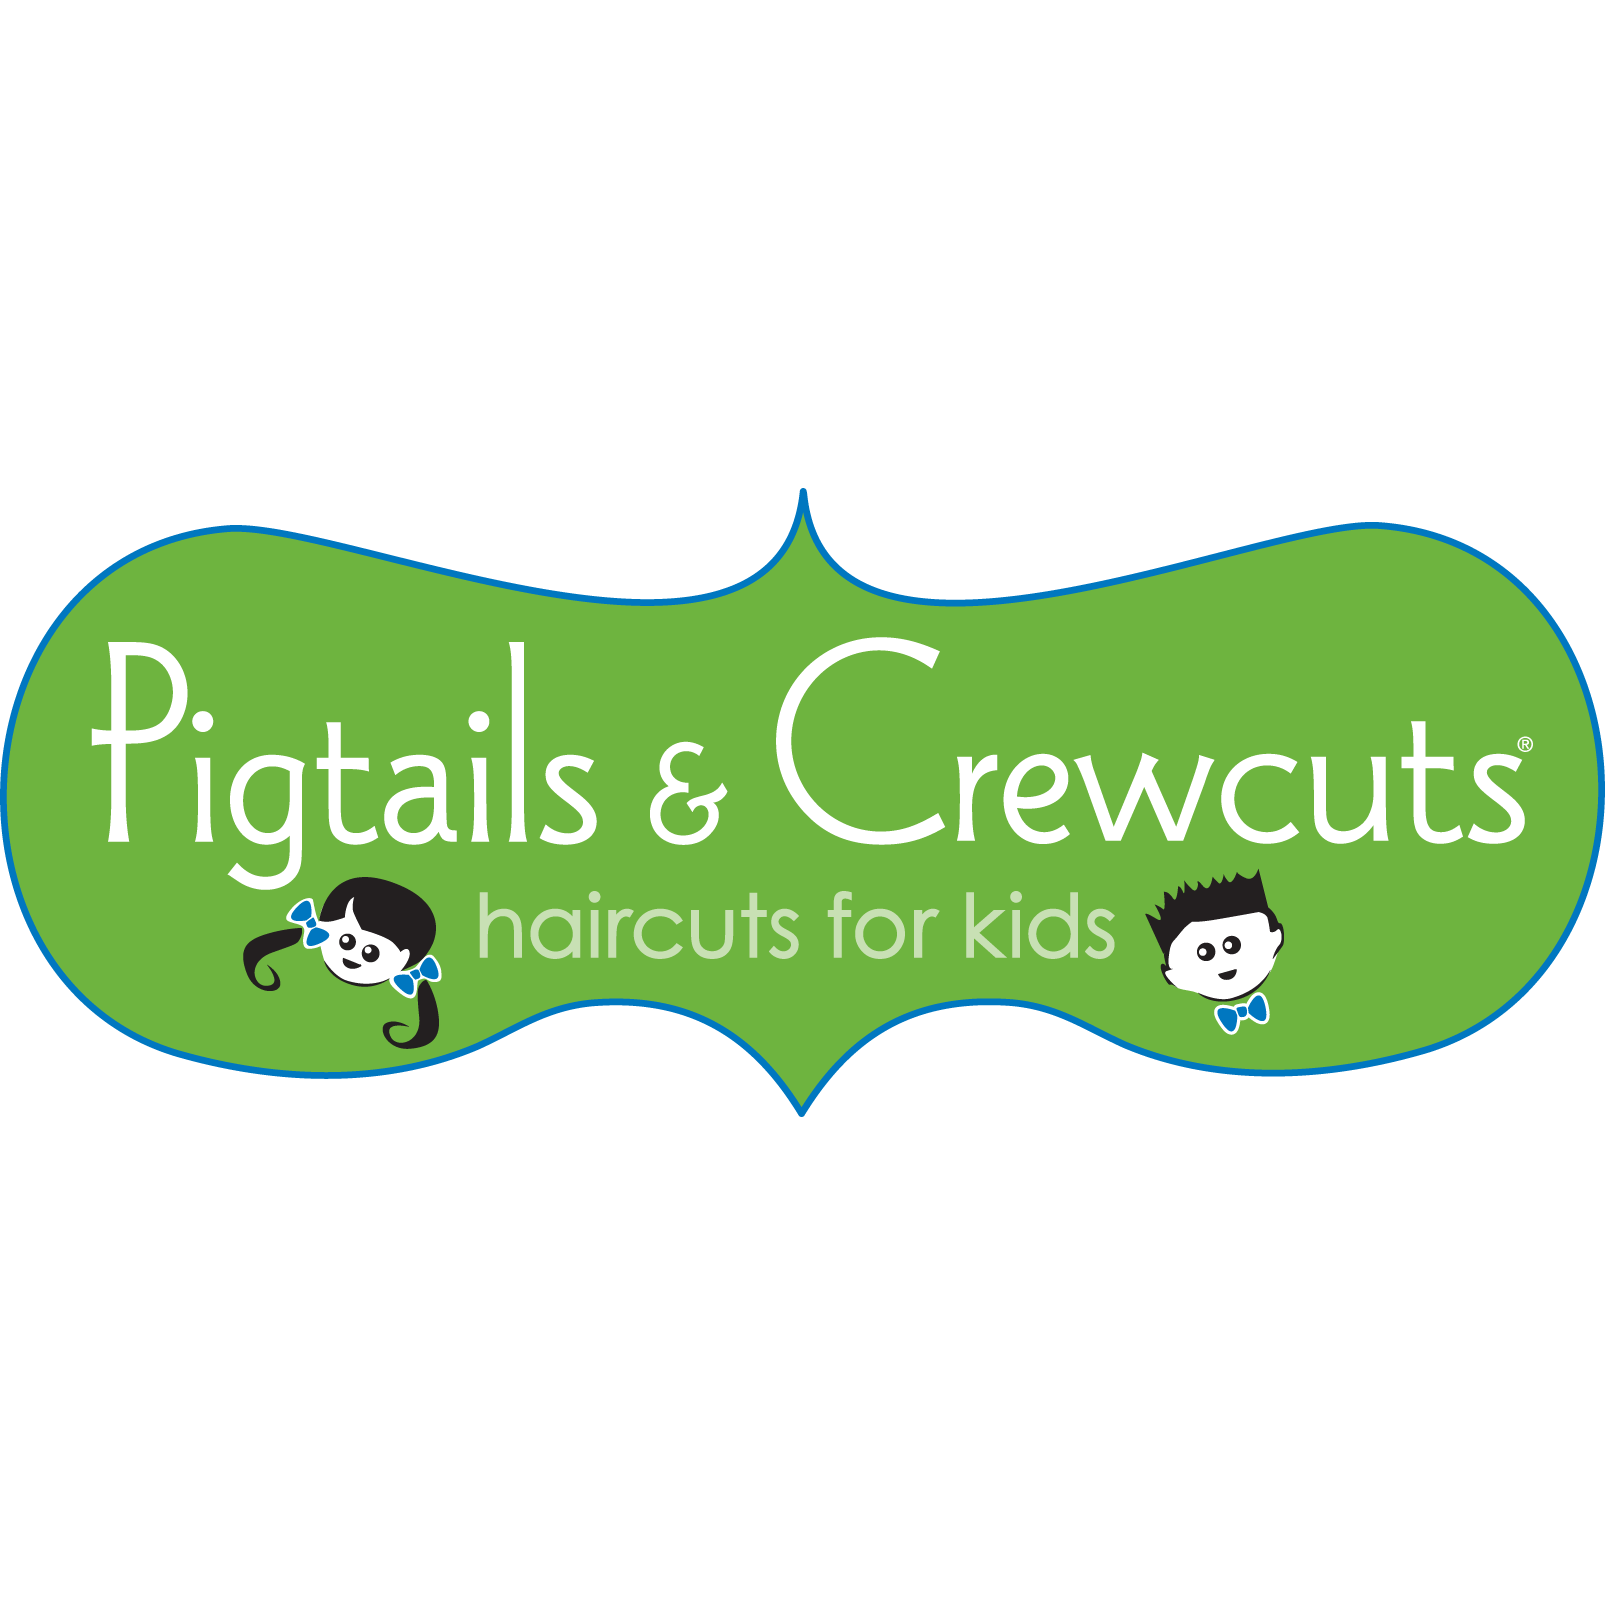 Pigtails & Crewcuts: Haircuts for Kids - Smyrna